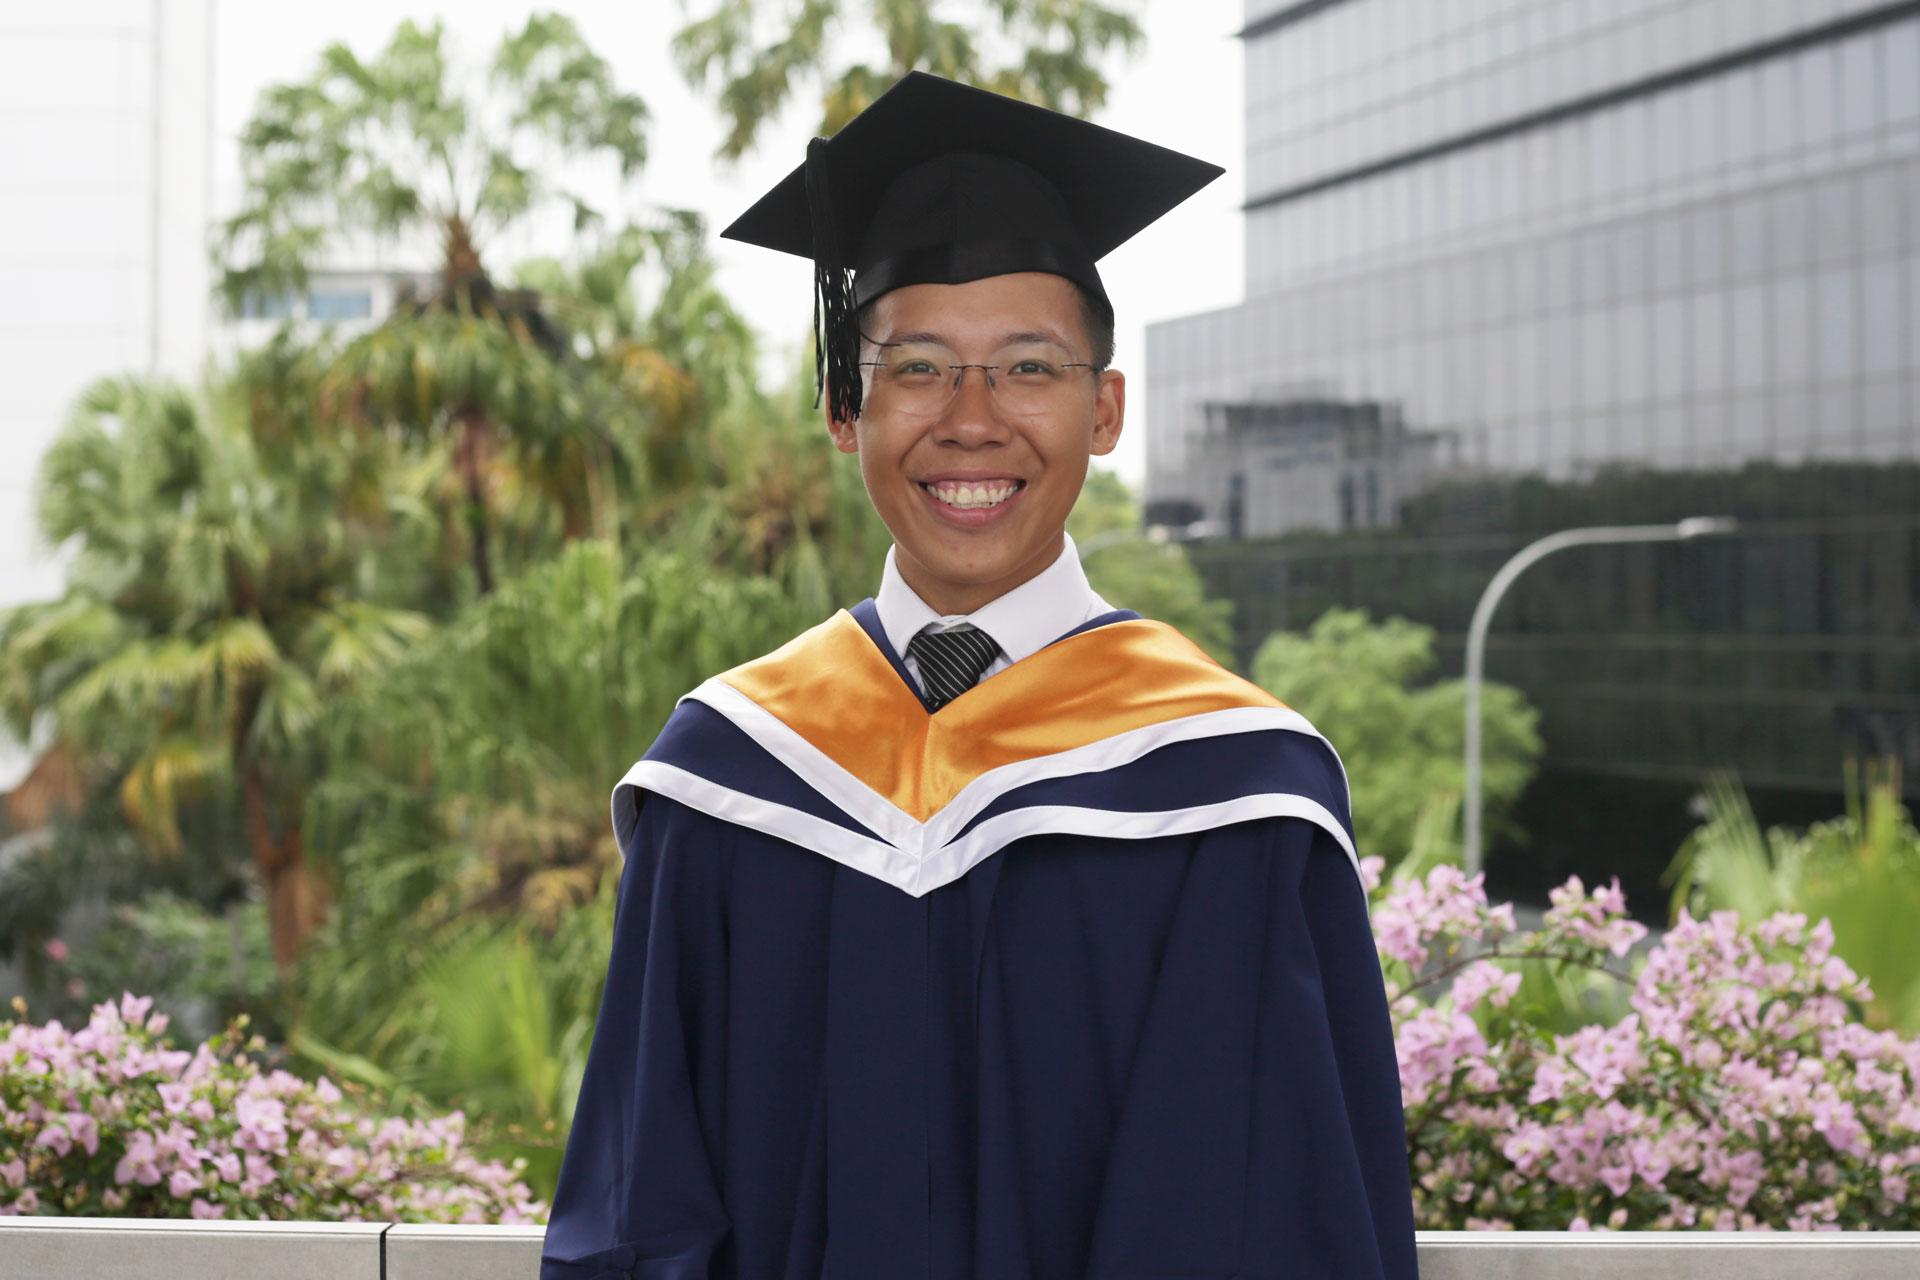 NTU grad turned dyslexia into 'strength' to emerge top student and Rhodes scholar